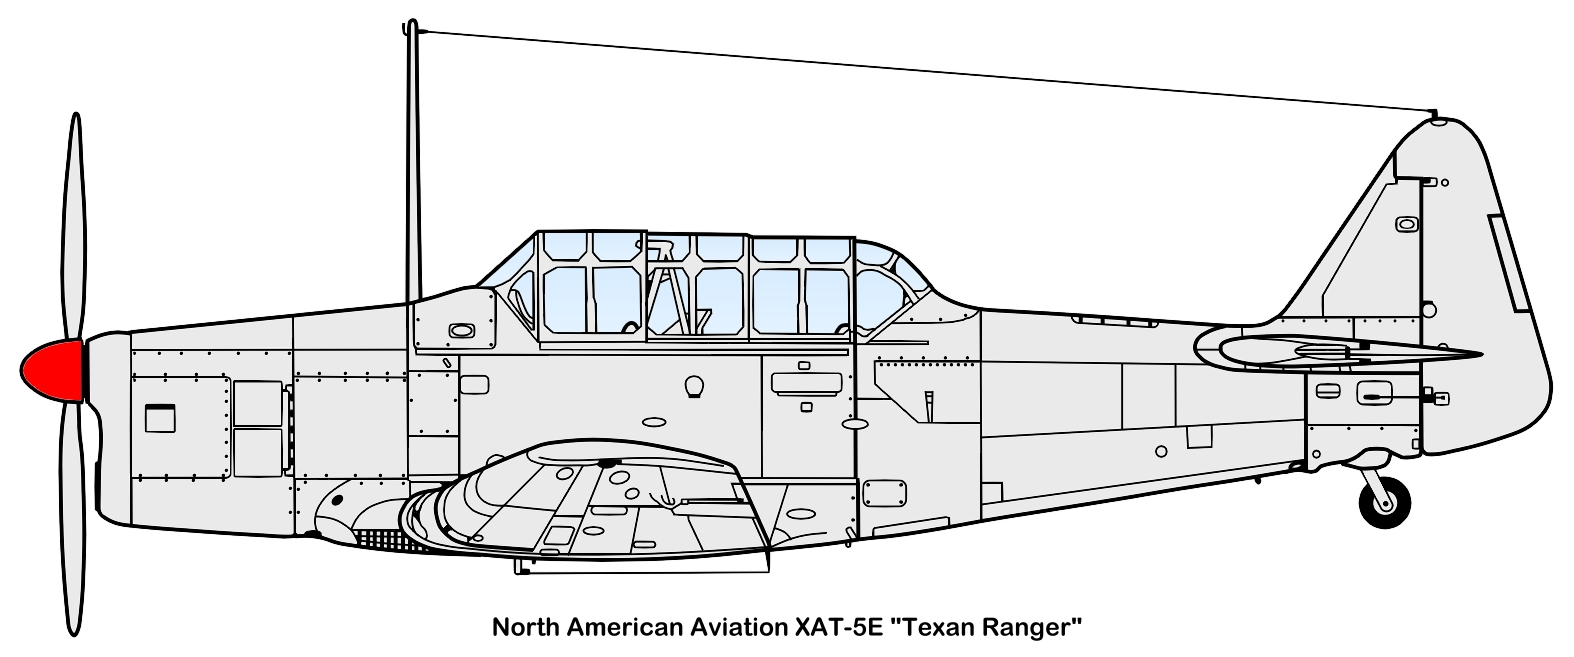 North American XAT-6E Texan-Ranger specifications and photos